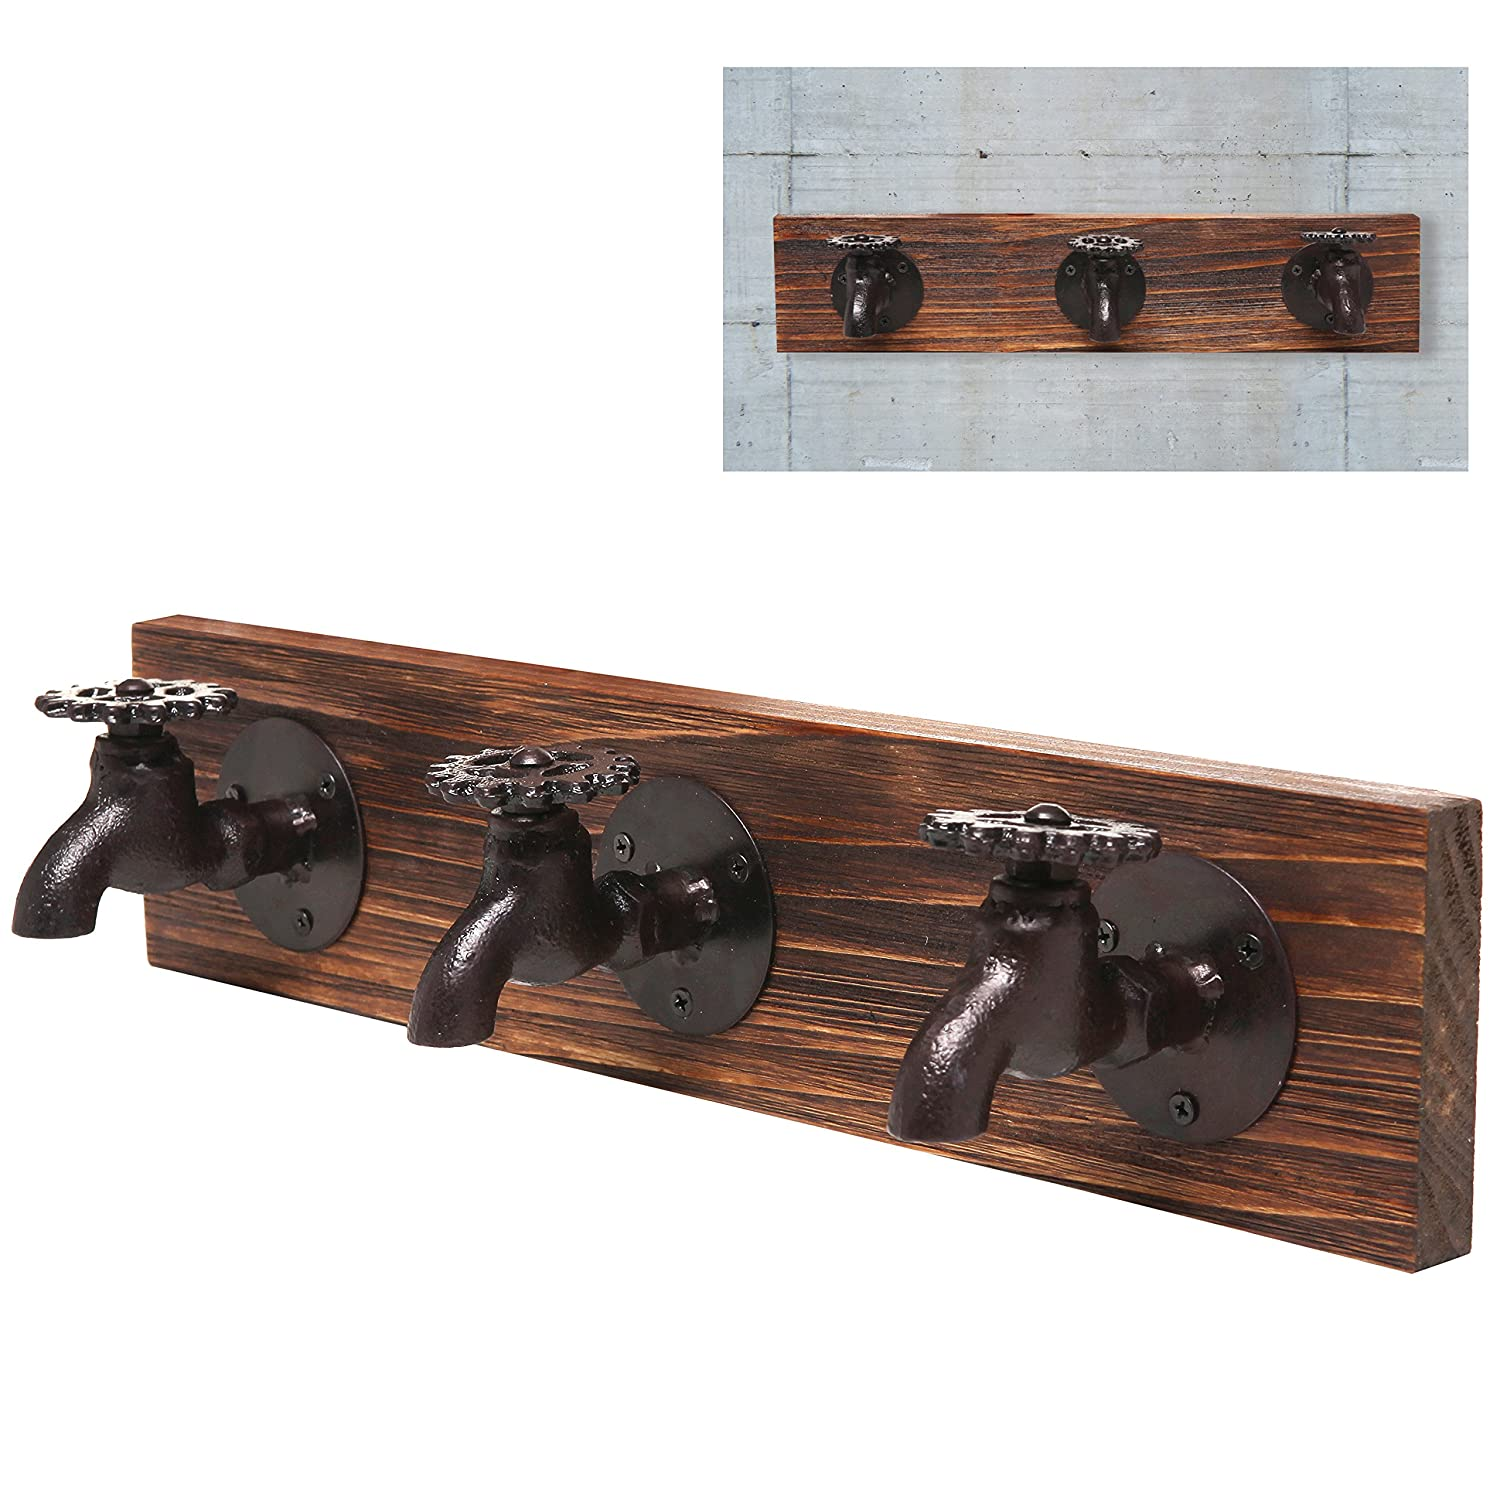 wood towel rack with hooks. Amazon.com: MyGift Country Rustic Old Fashion Faucet Wall Mounted Iron \u0026 Wood 3 Coat Hooks Garment, Towels, Hat Hanger Rack: Kitchen Dining Towel Rack With